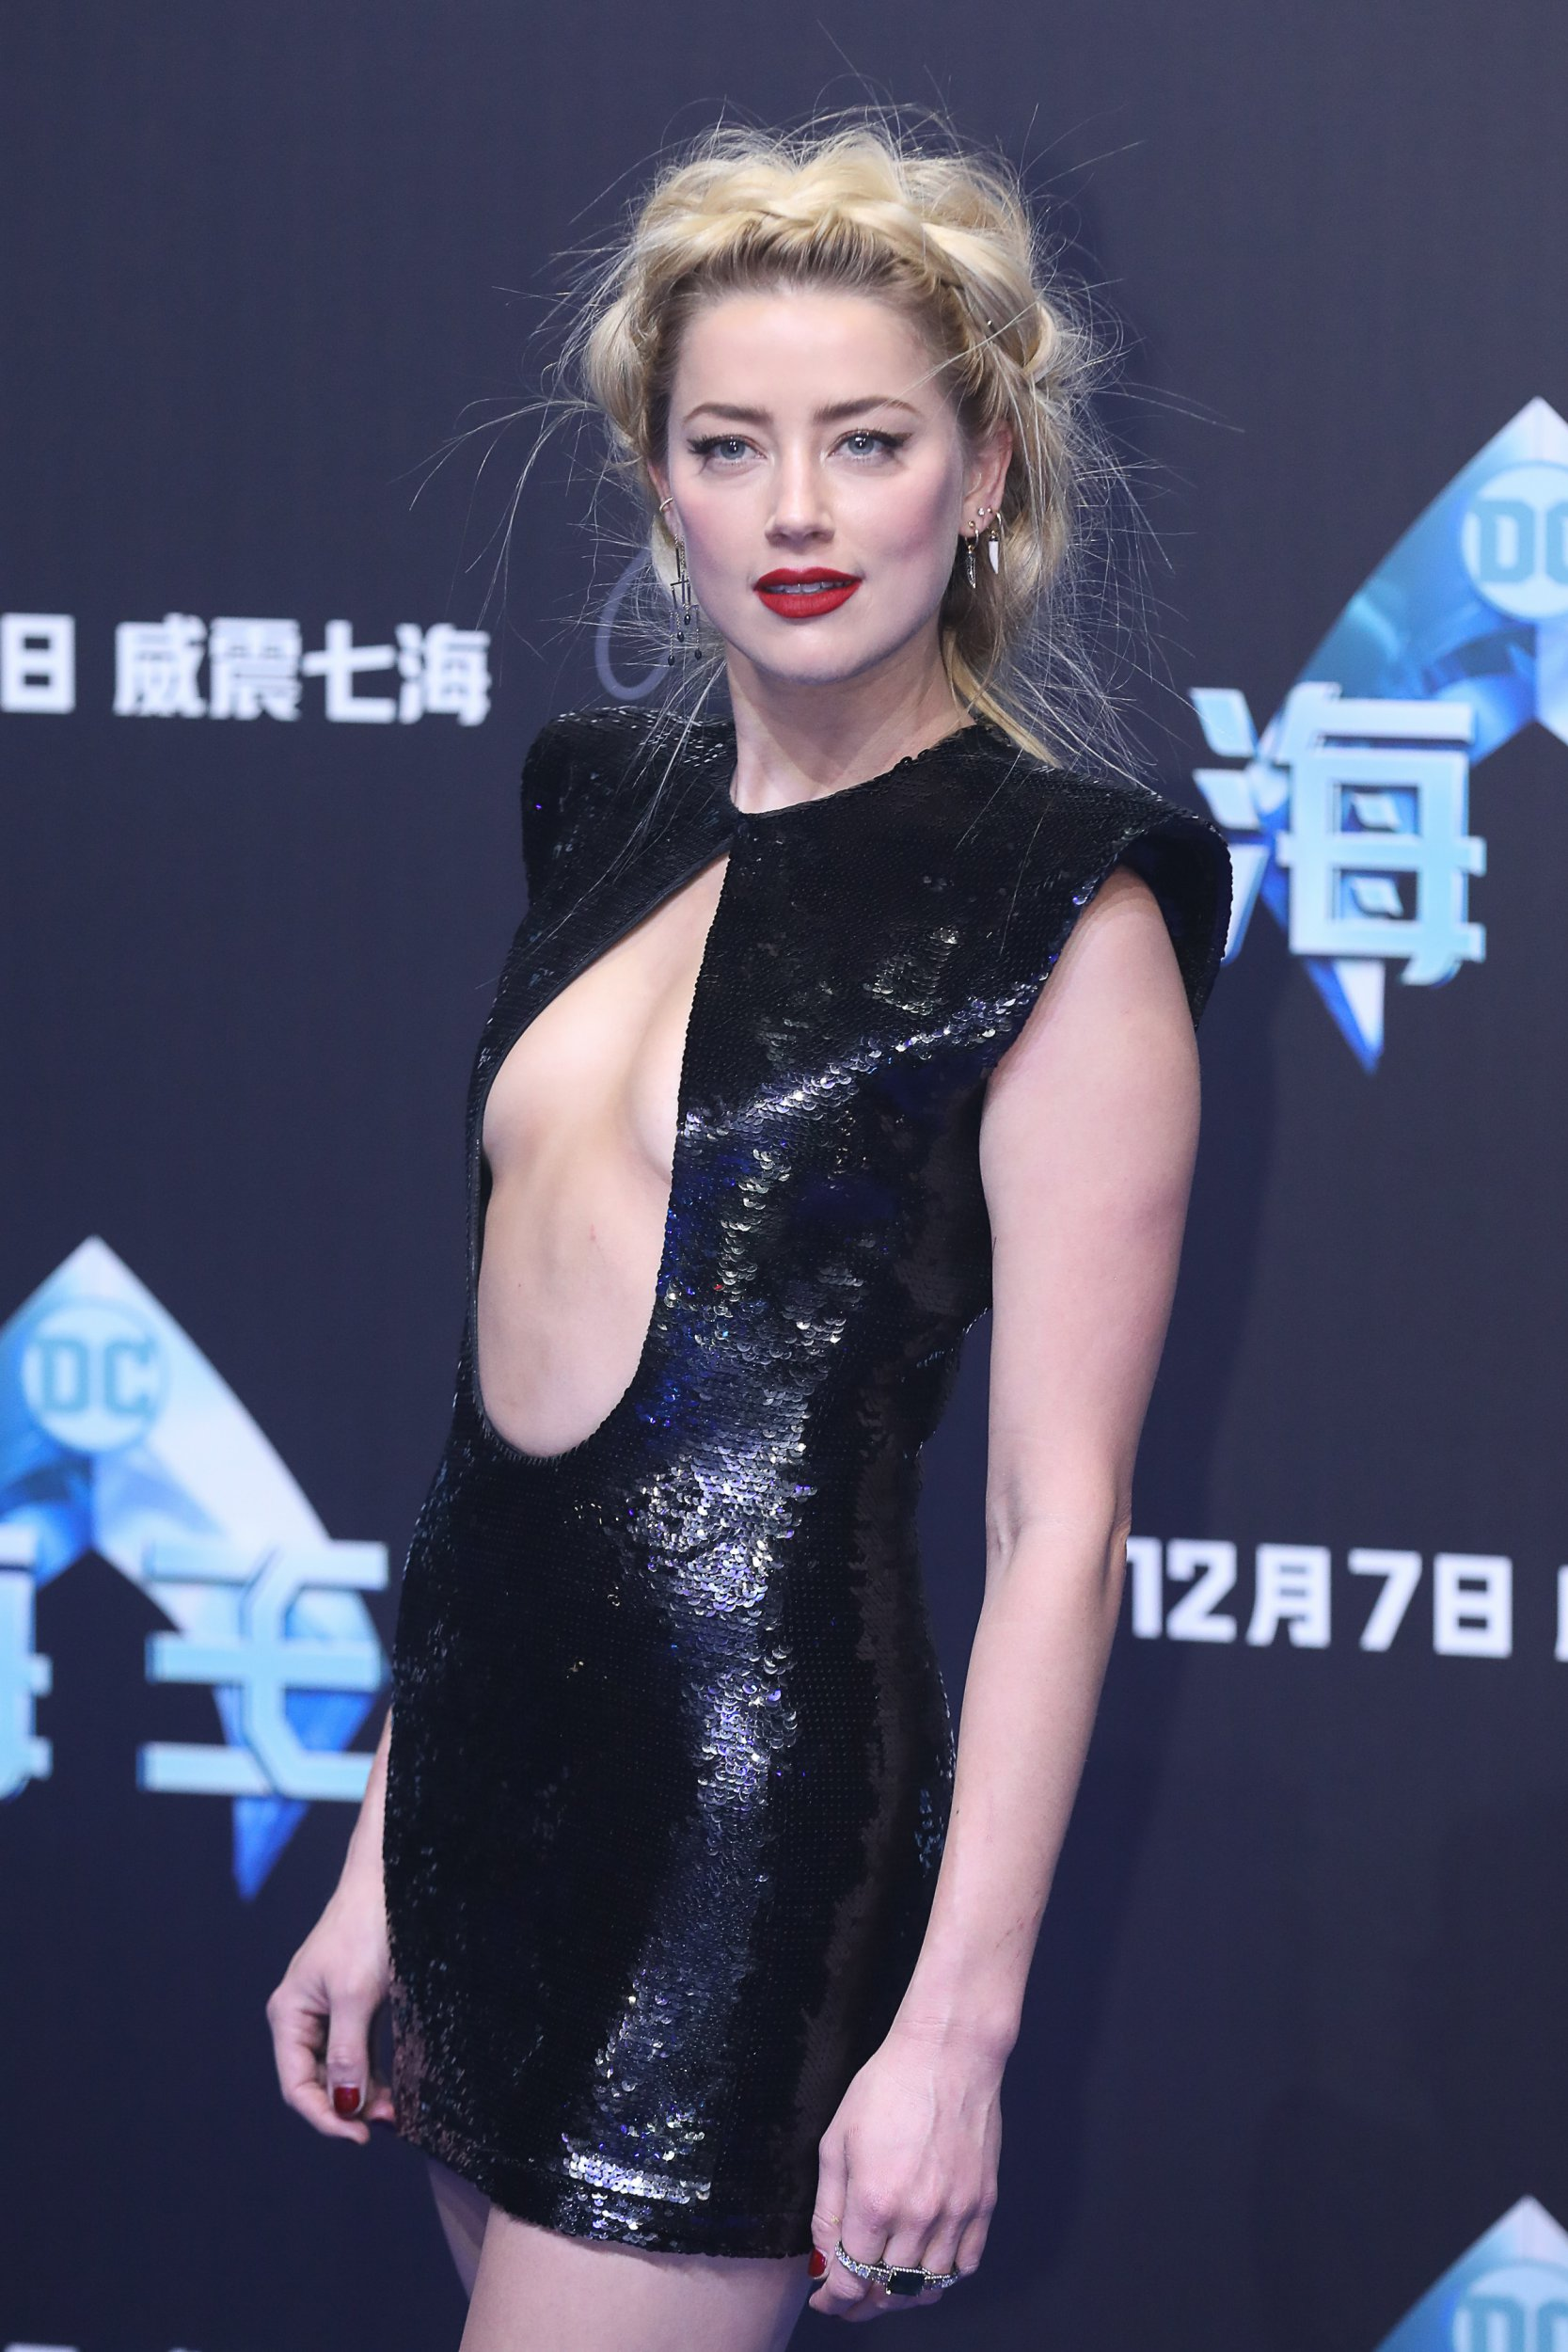 BEIJING, CHINA - NOVEMBER 18: American actress Amber Heard attends the premiere of director James Wan's film 'Aquaman' on November 18, 2018 in Beijing, China. (Photo by VCG/VCG via Getty Images)